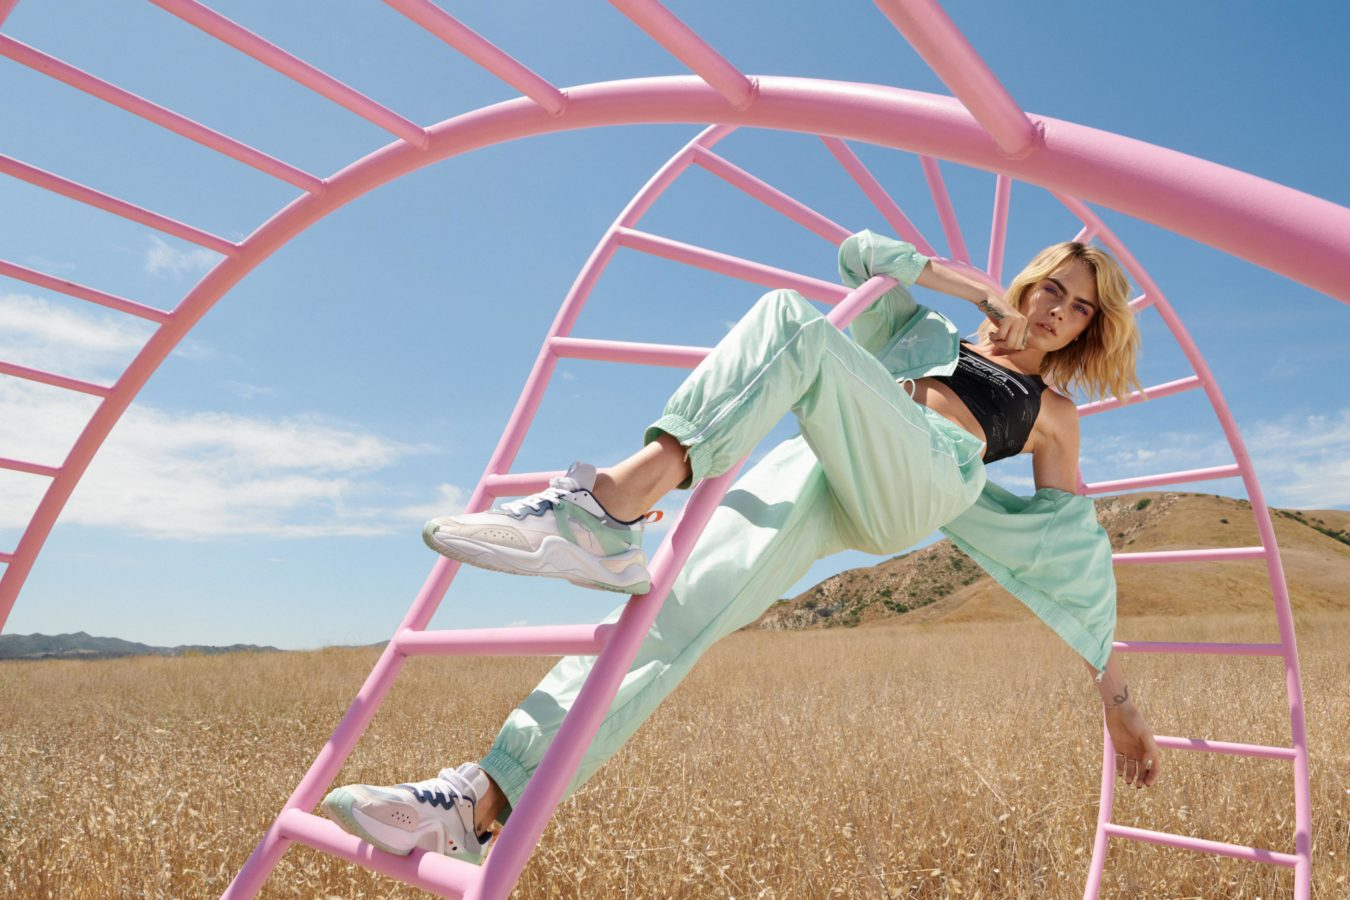 Puma launches the Rise, a stylish new sneaker for women